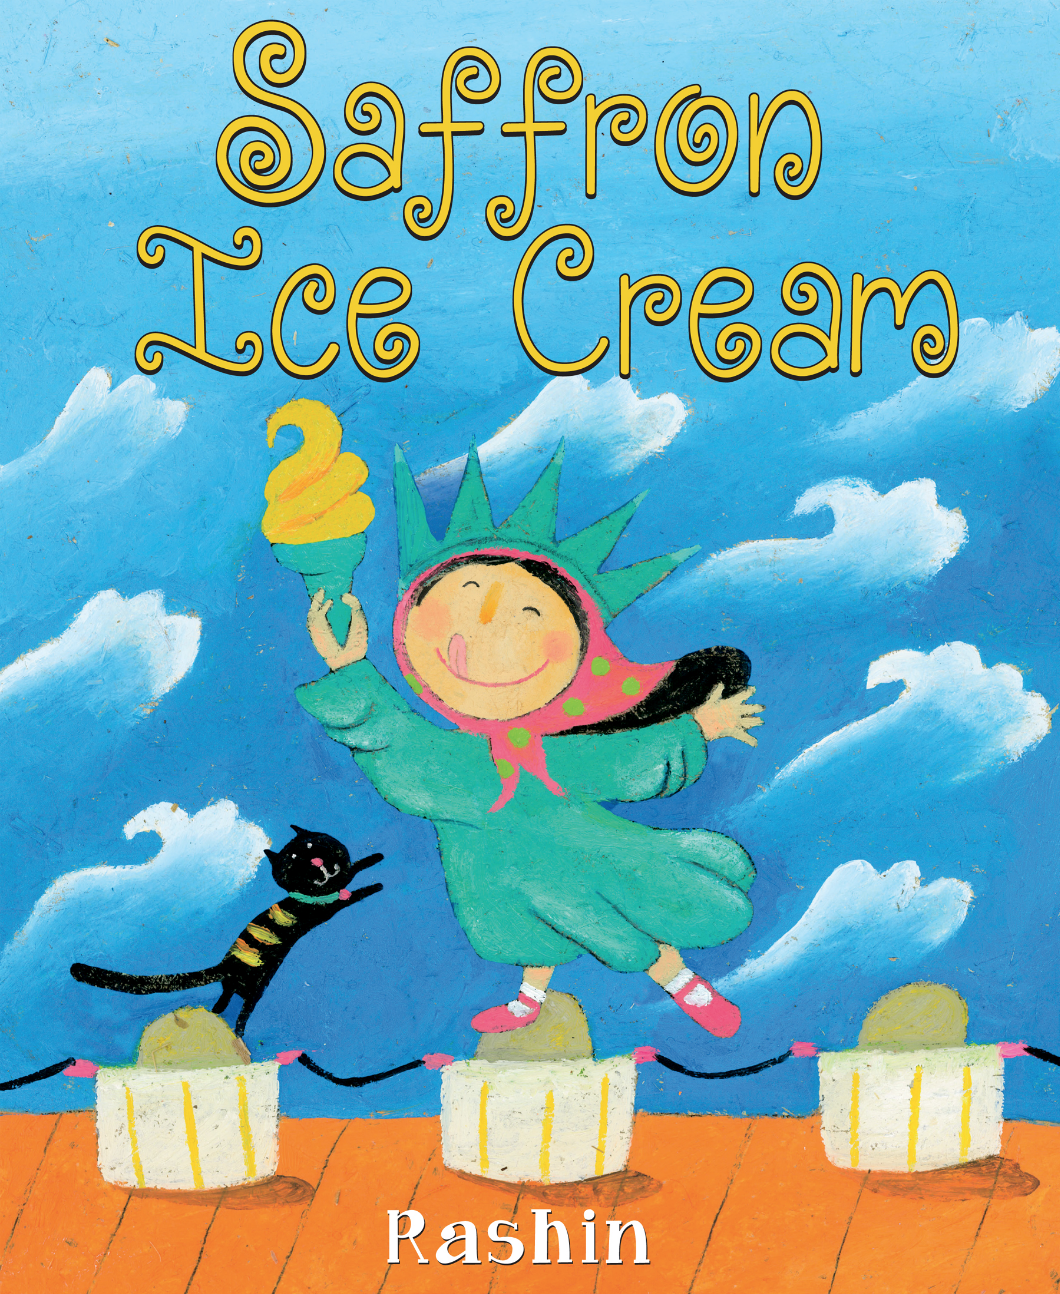 saffron ice cream cover image